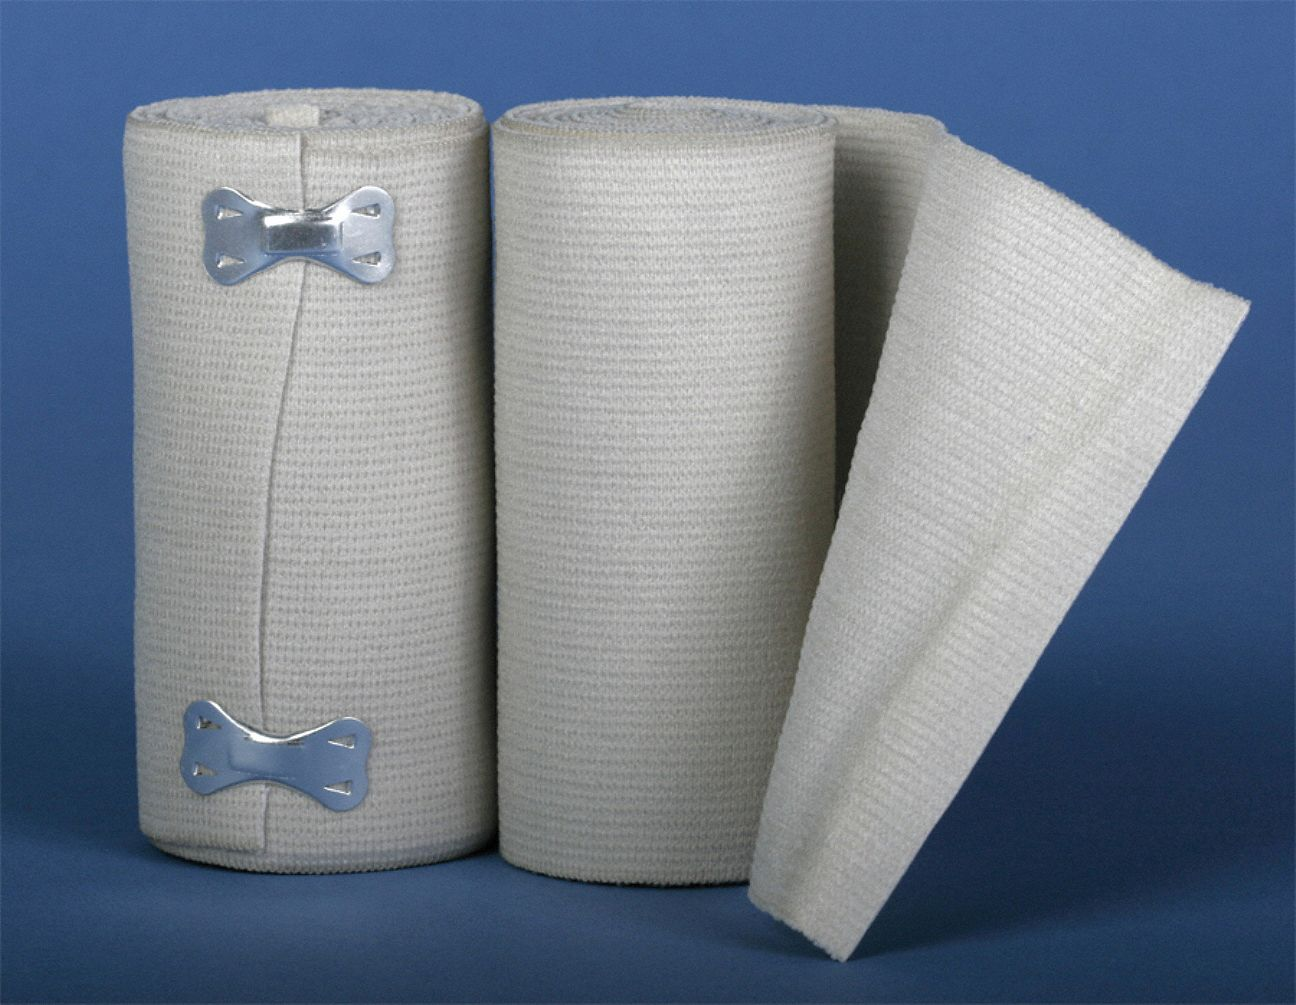 Bandage, Latex Free,  Bulk,  Non-Sterile,  Elastic Fabric,  Includes Clips,  PK 10